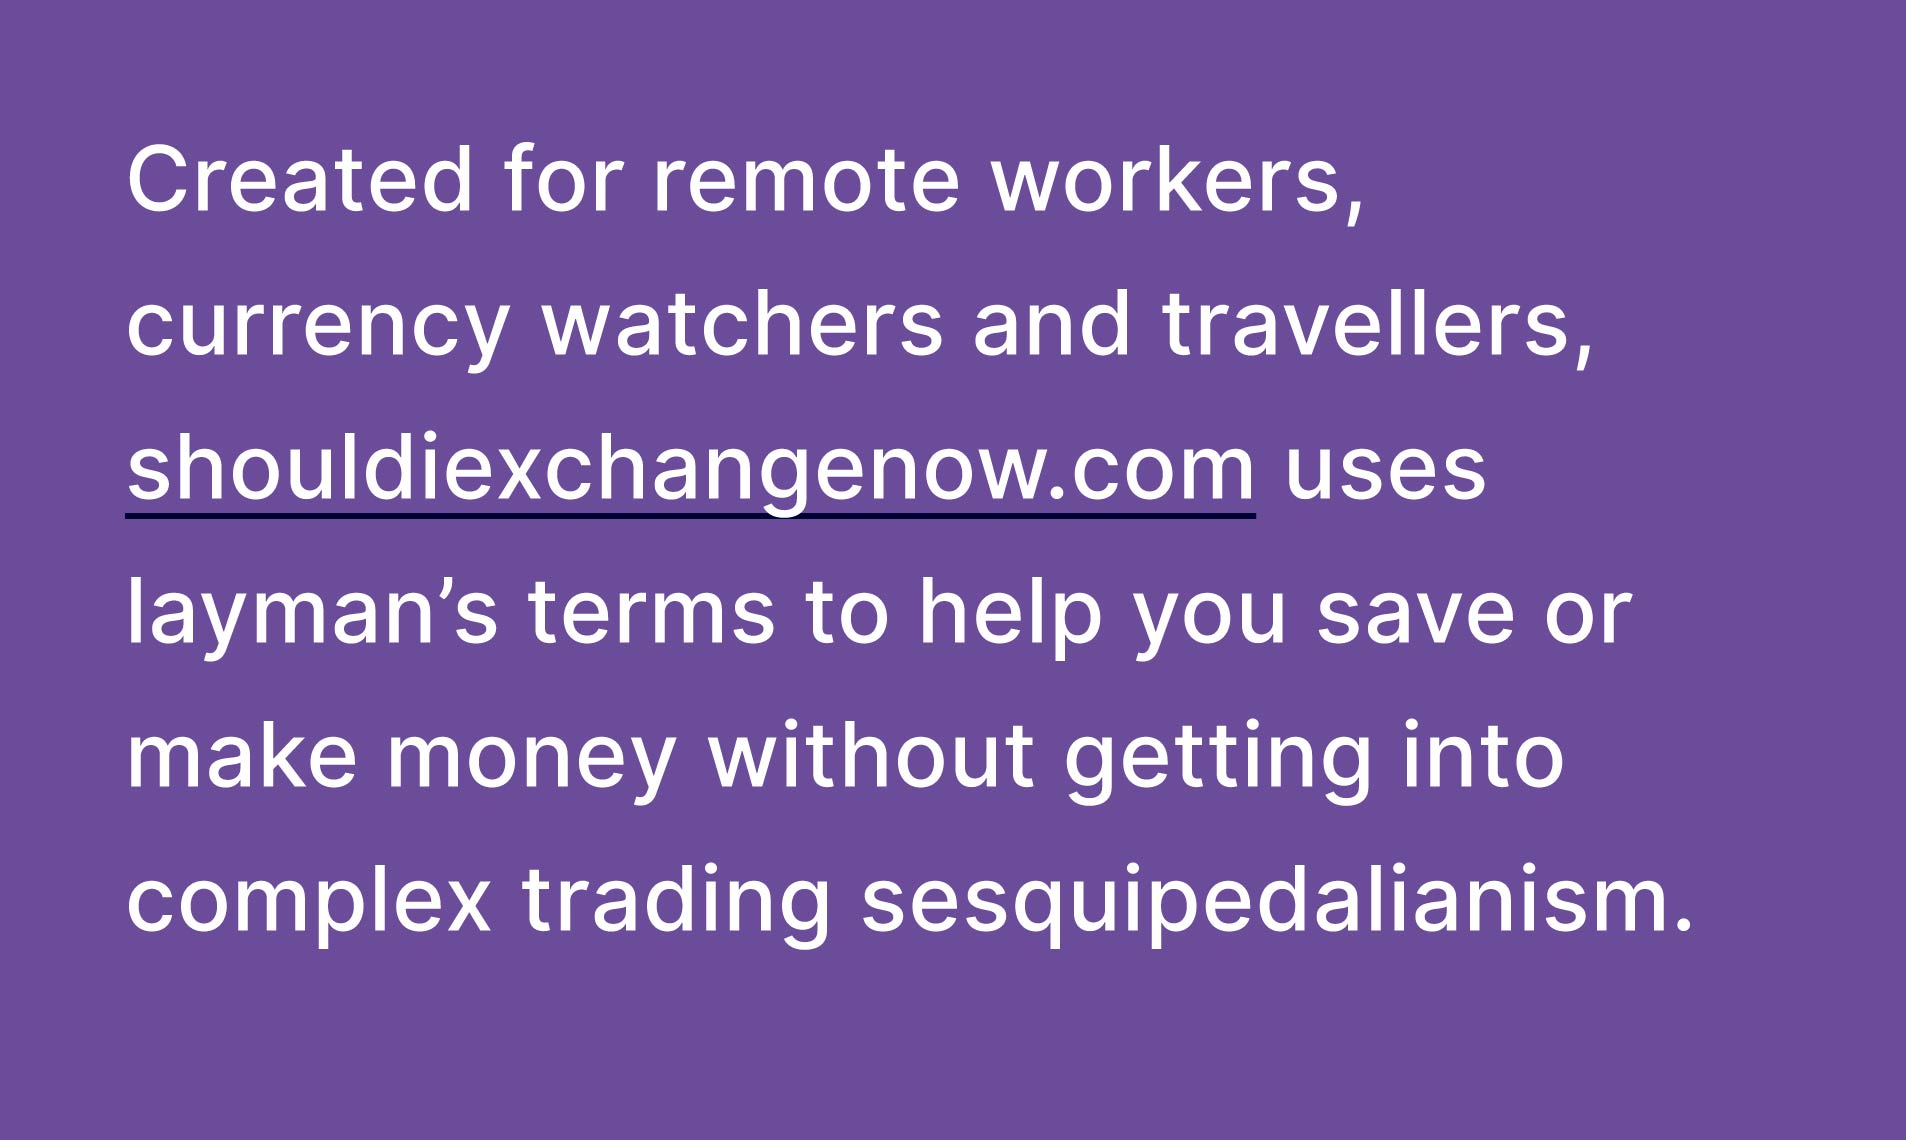 Created for remote workers, currency watchers and travellers, shouldiexchangenow.com uses layman's terms to help you save or make money without getting into complex trading sesquipedalianism.